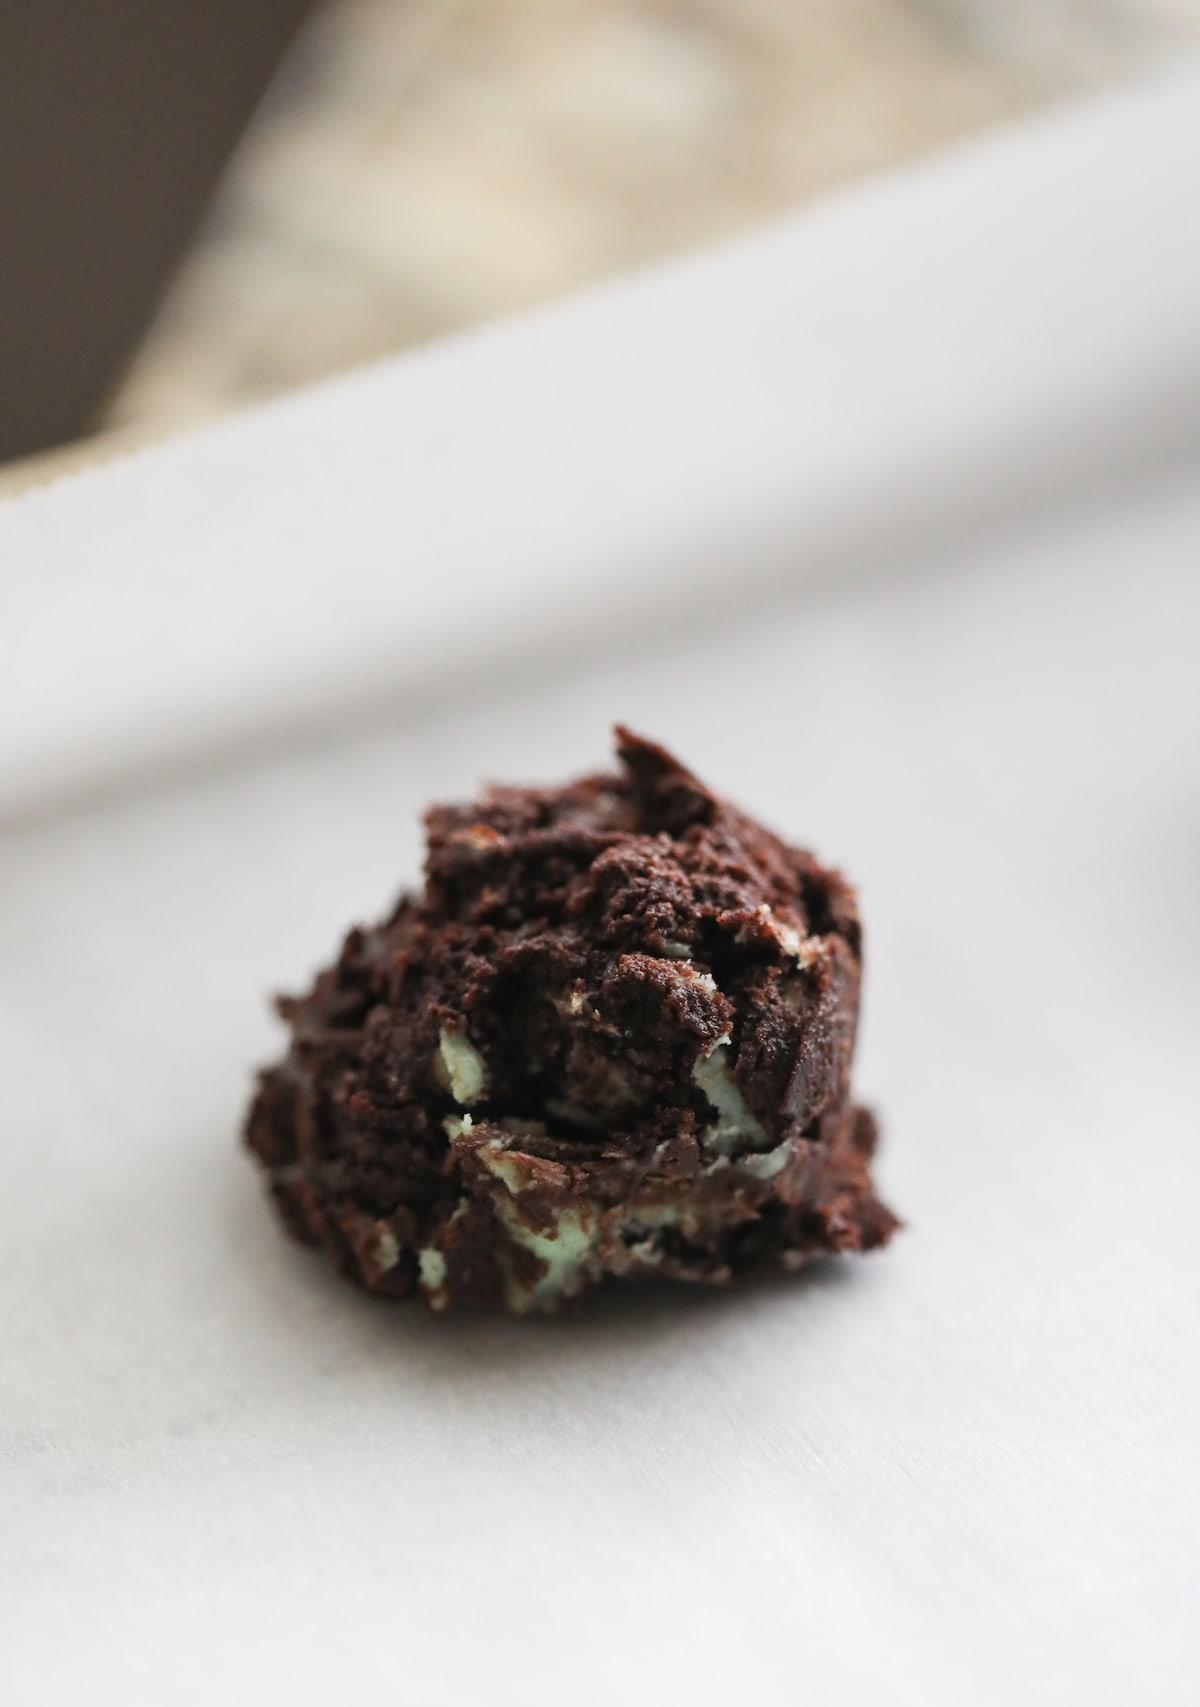 mint chocolate cookie dough scooped on baking sheets